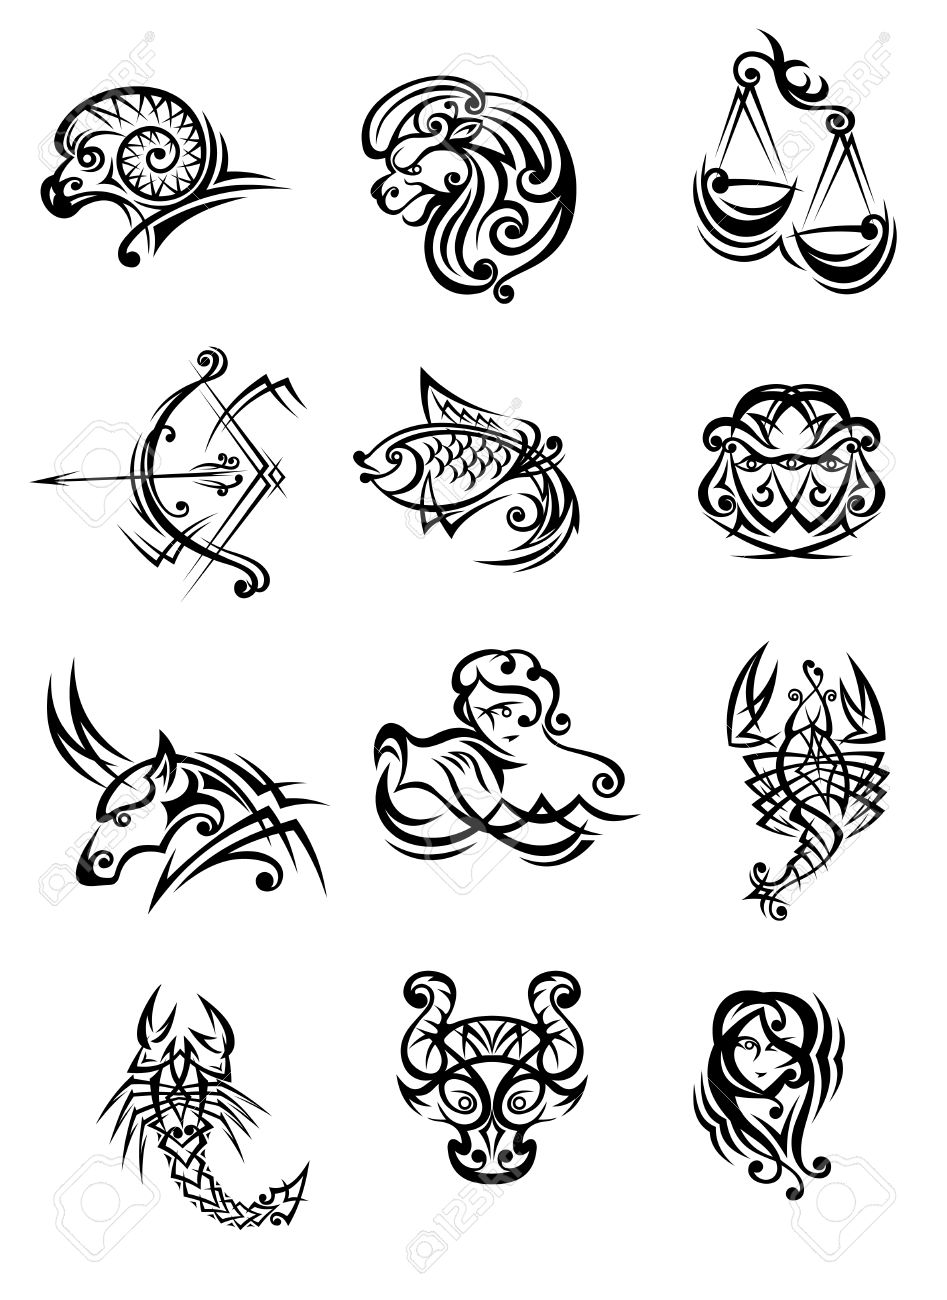 Tribal Black And White Vector Doodle Sketch Zodiac Signs Royalty